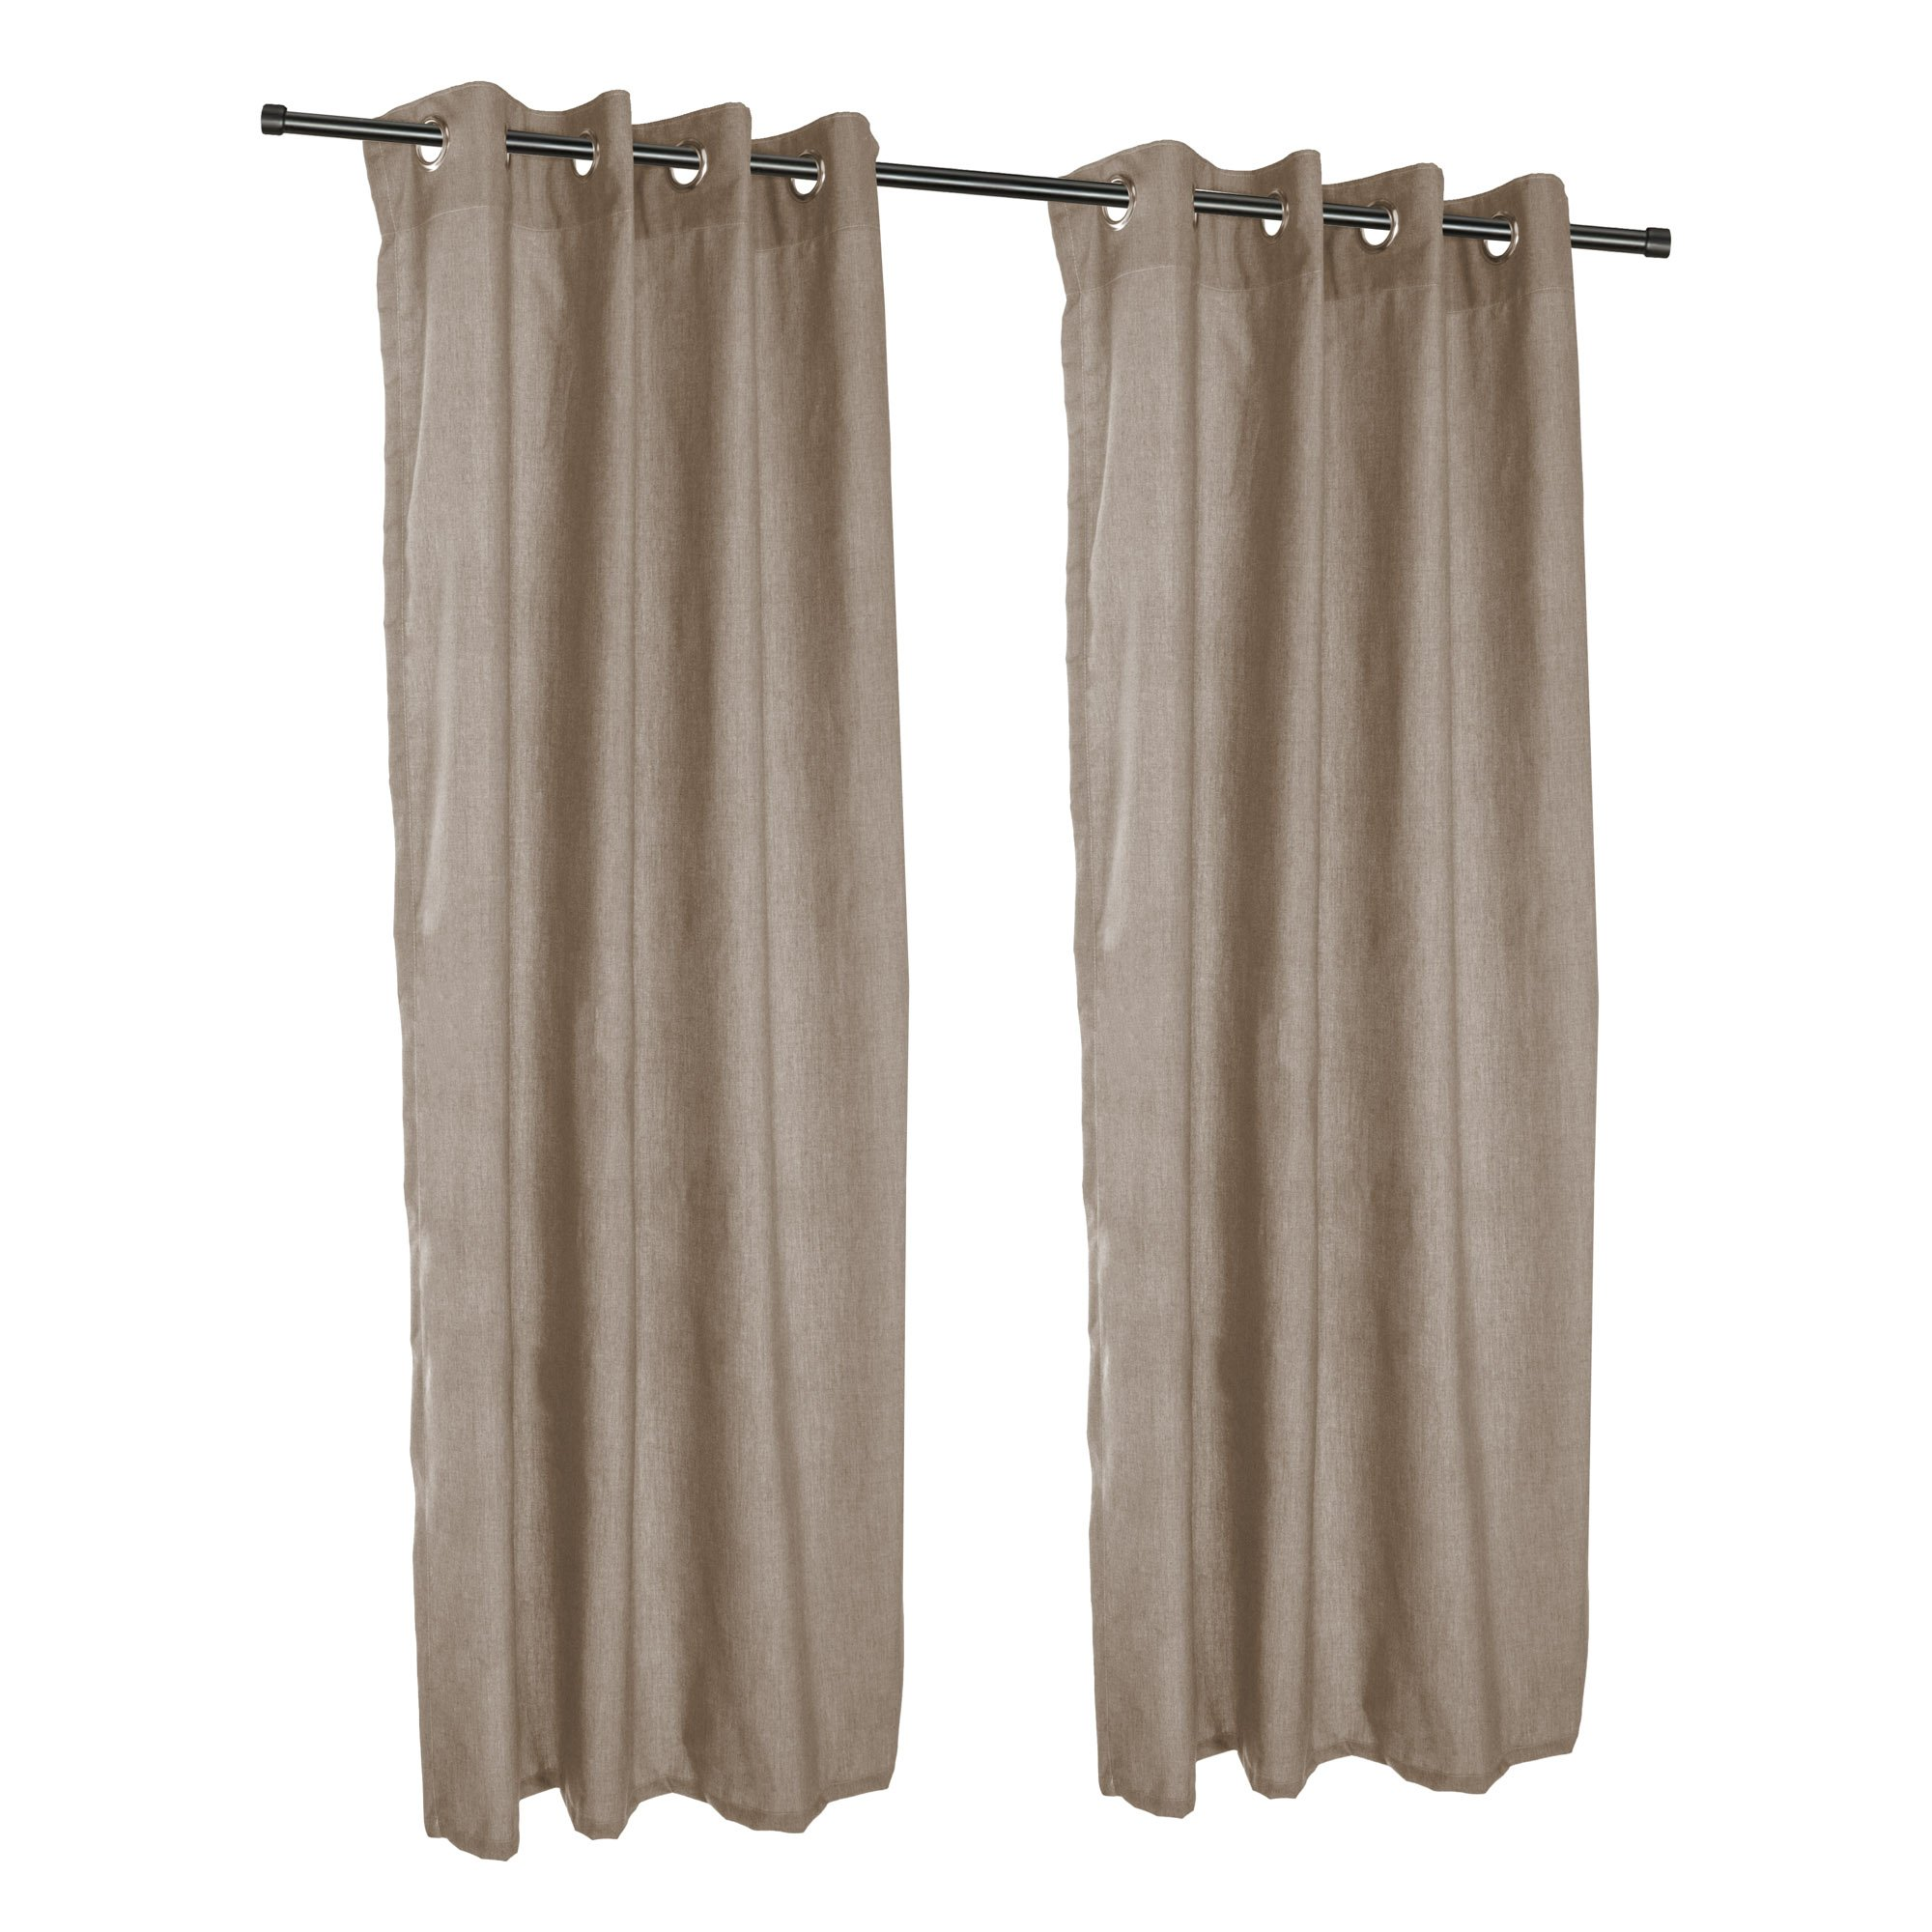 Sunbrella Outdoor Curtain with Nickel Grommets - Cast Shale (50'' W X 96'' L)